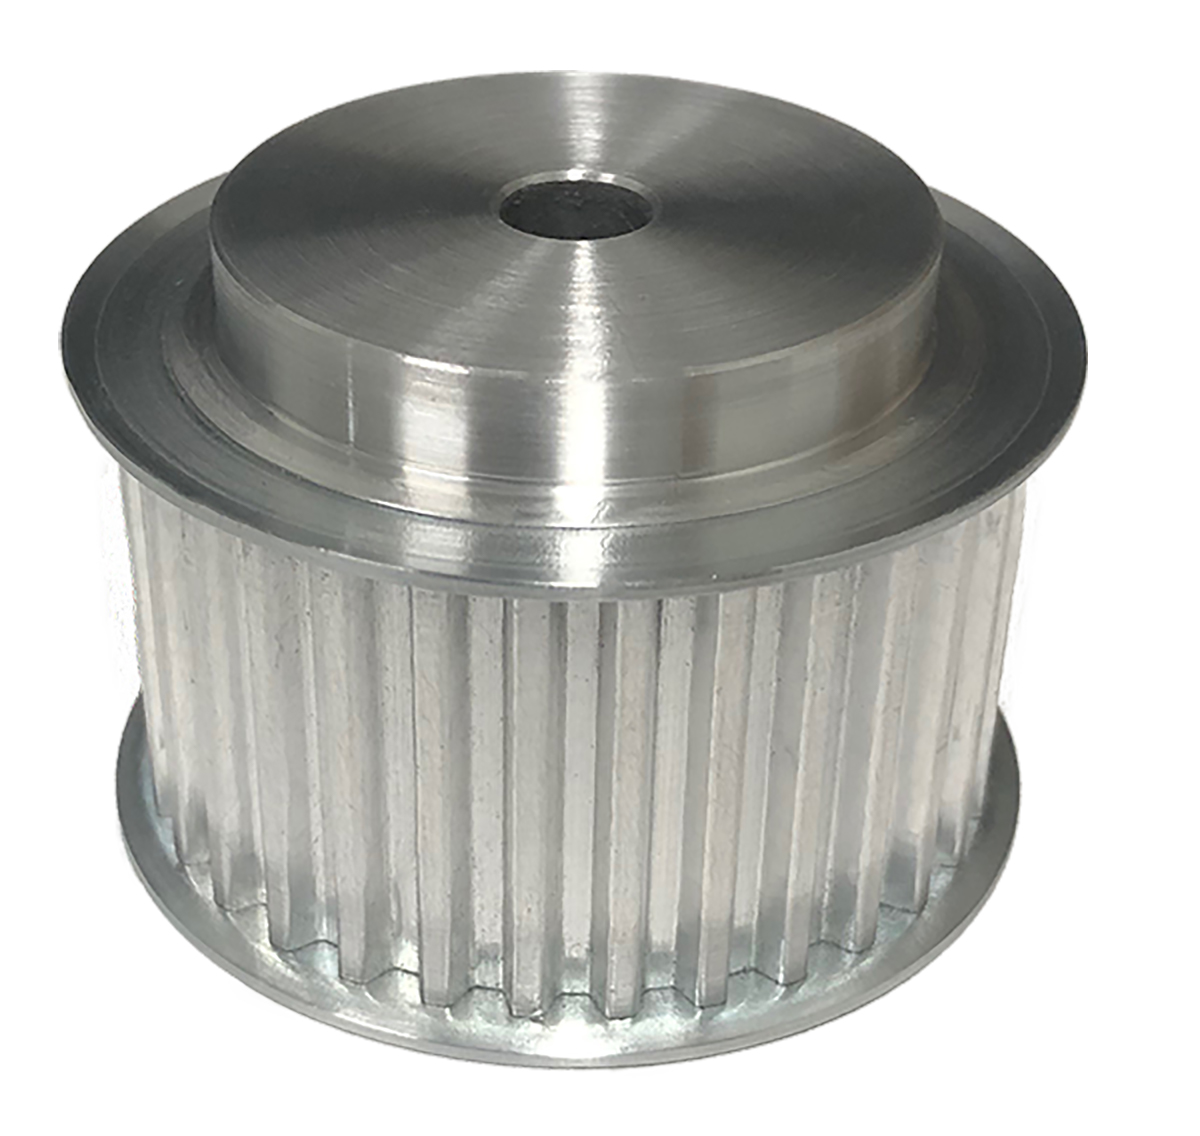 36T5/25-2 - Aluminum Metric Pulleys